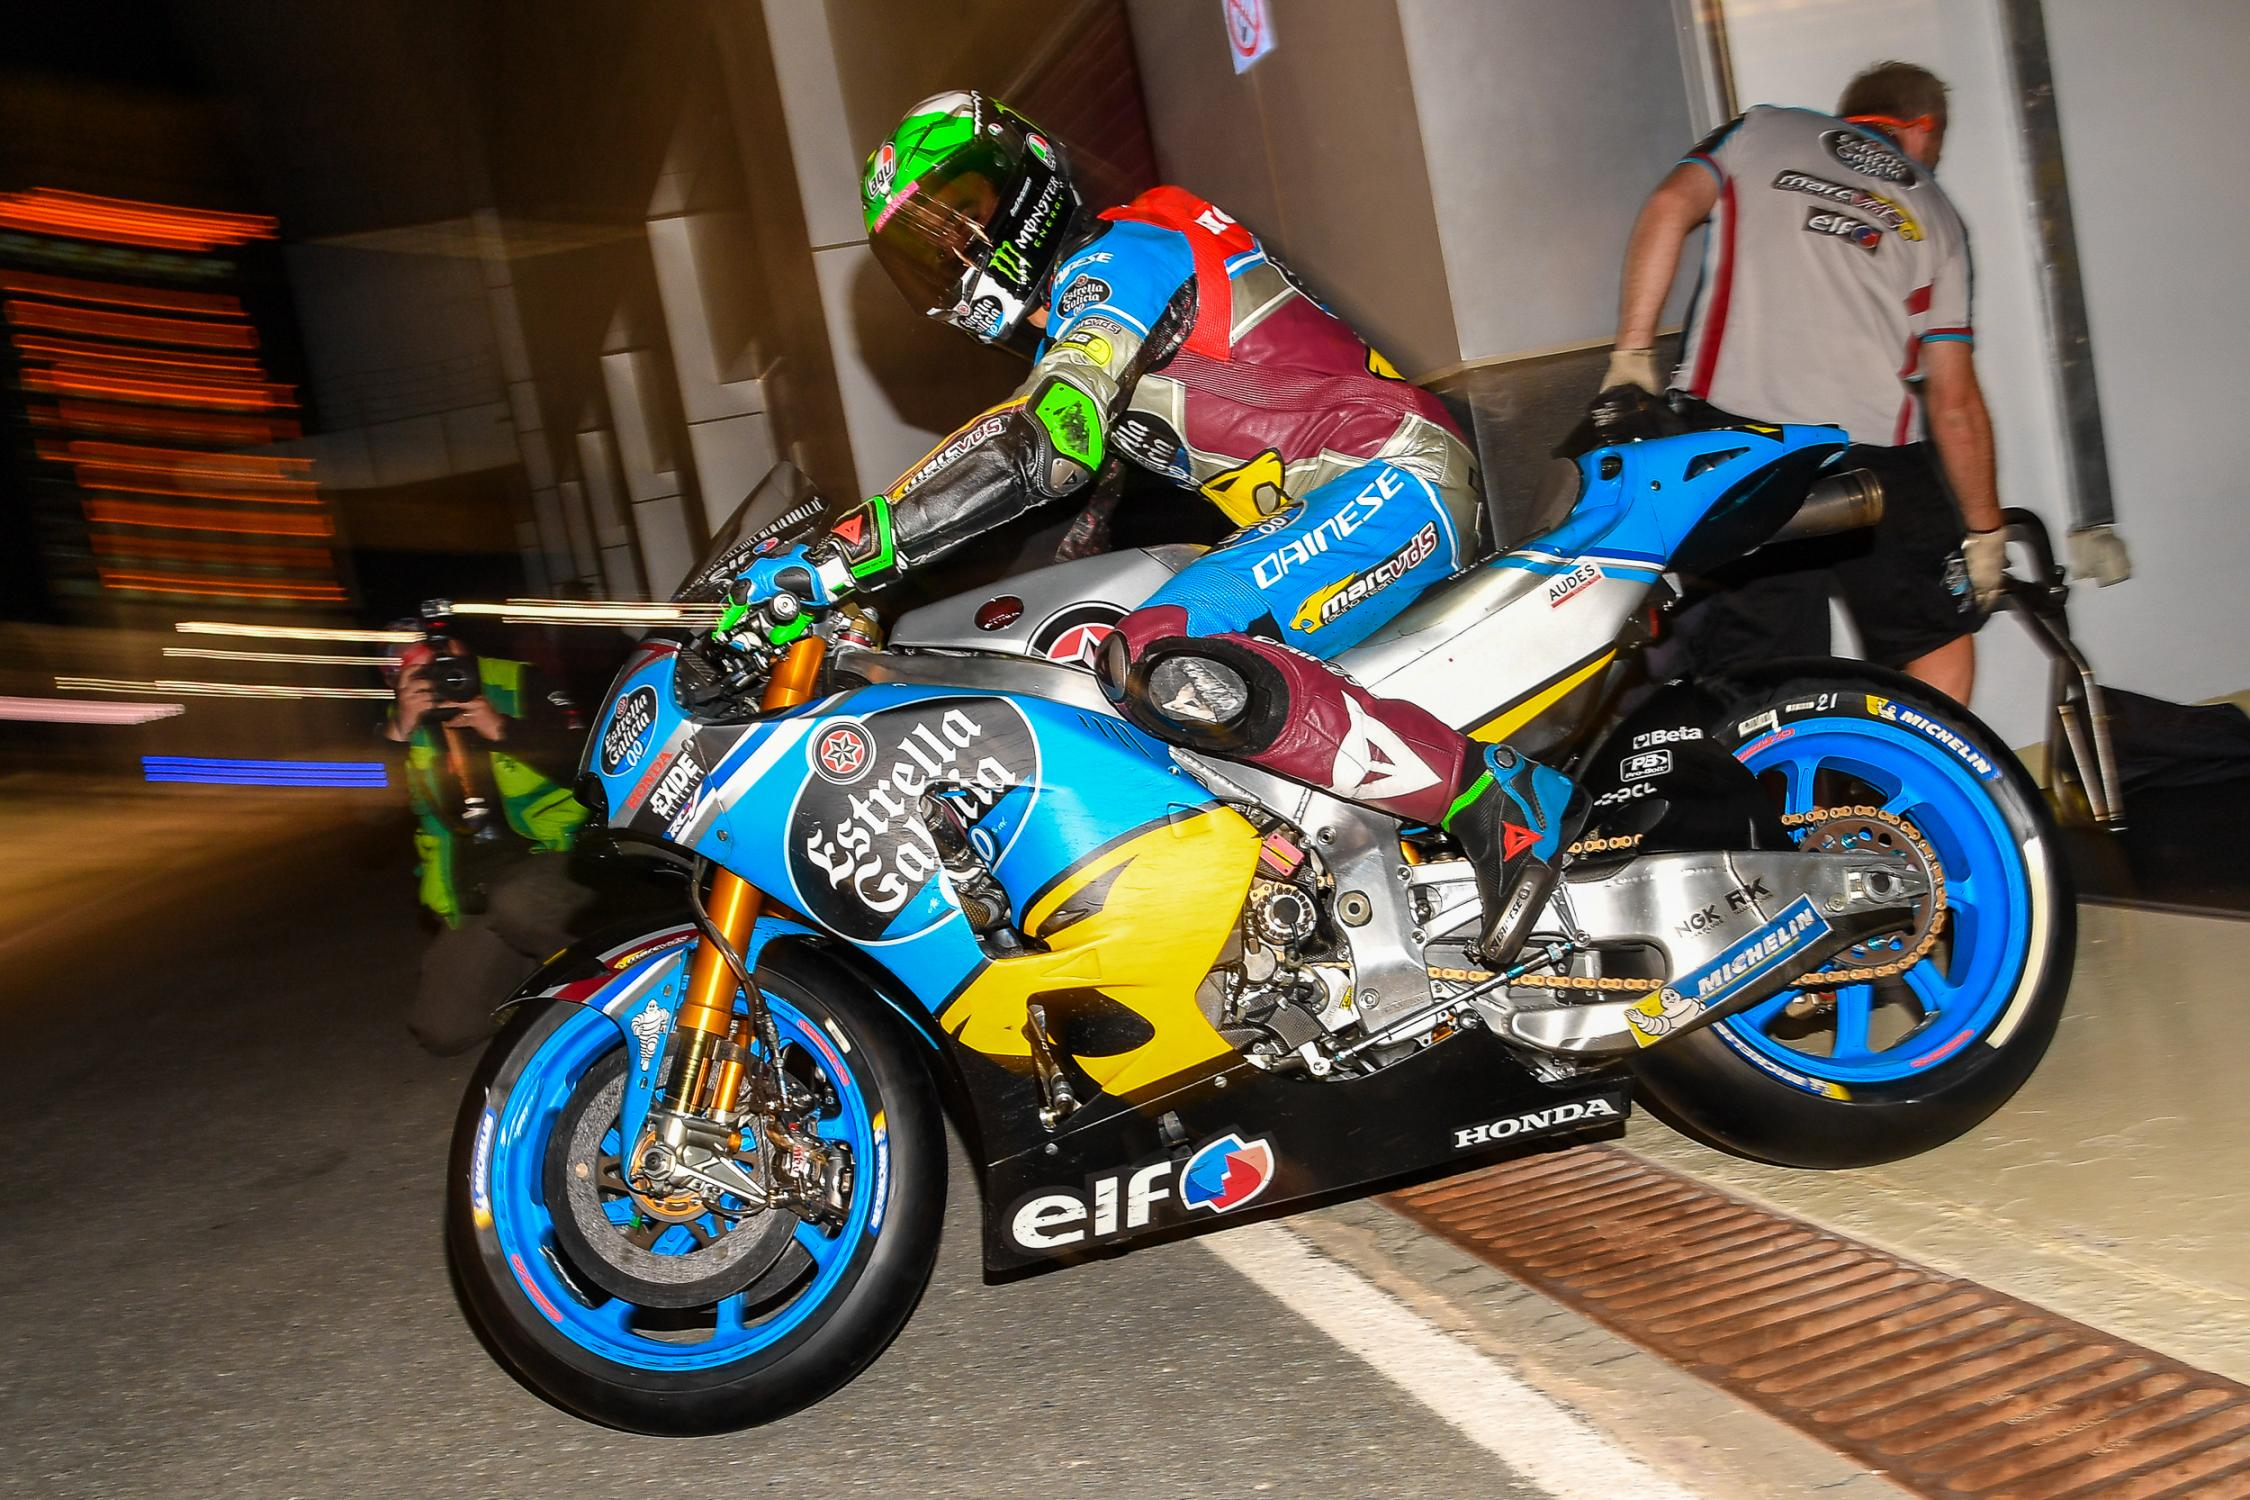 21-franco-morbidelli-italg5_5848.gallery_full_top_fullscreen.jpg